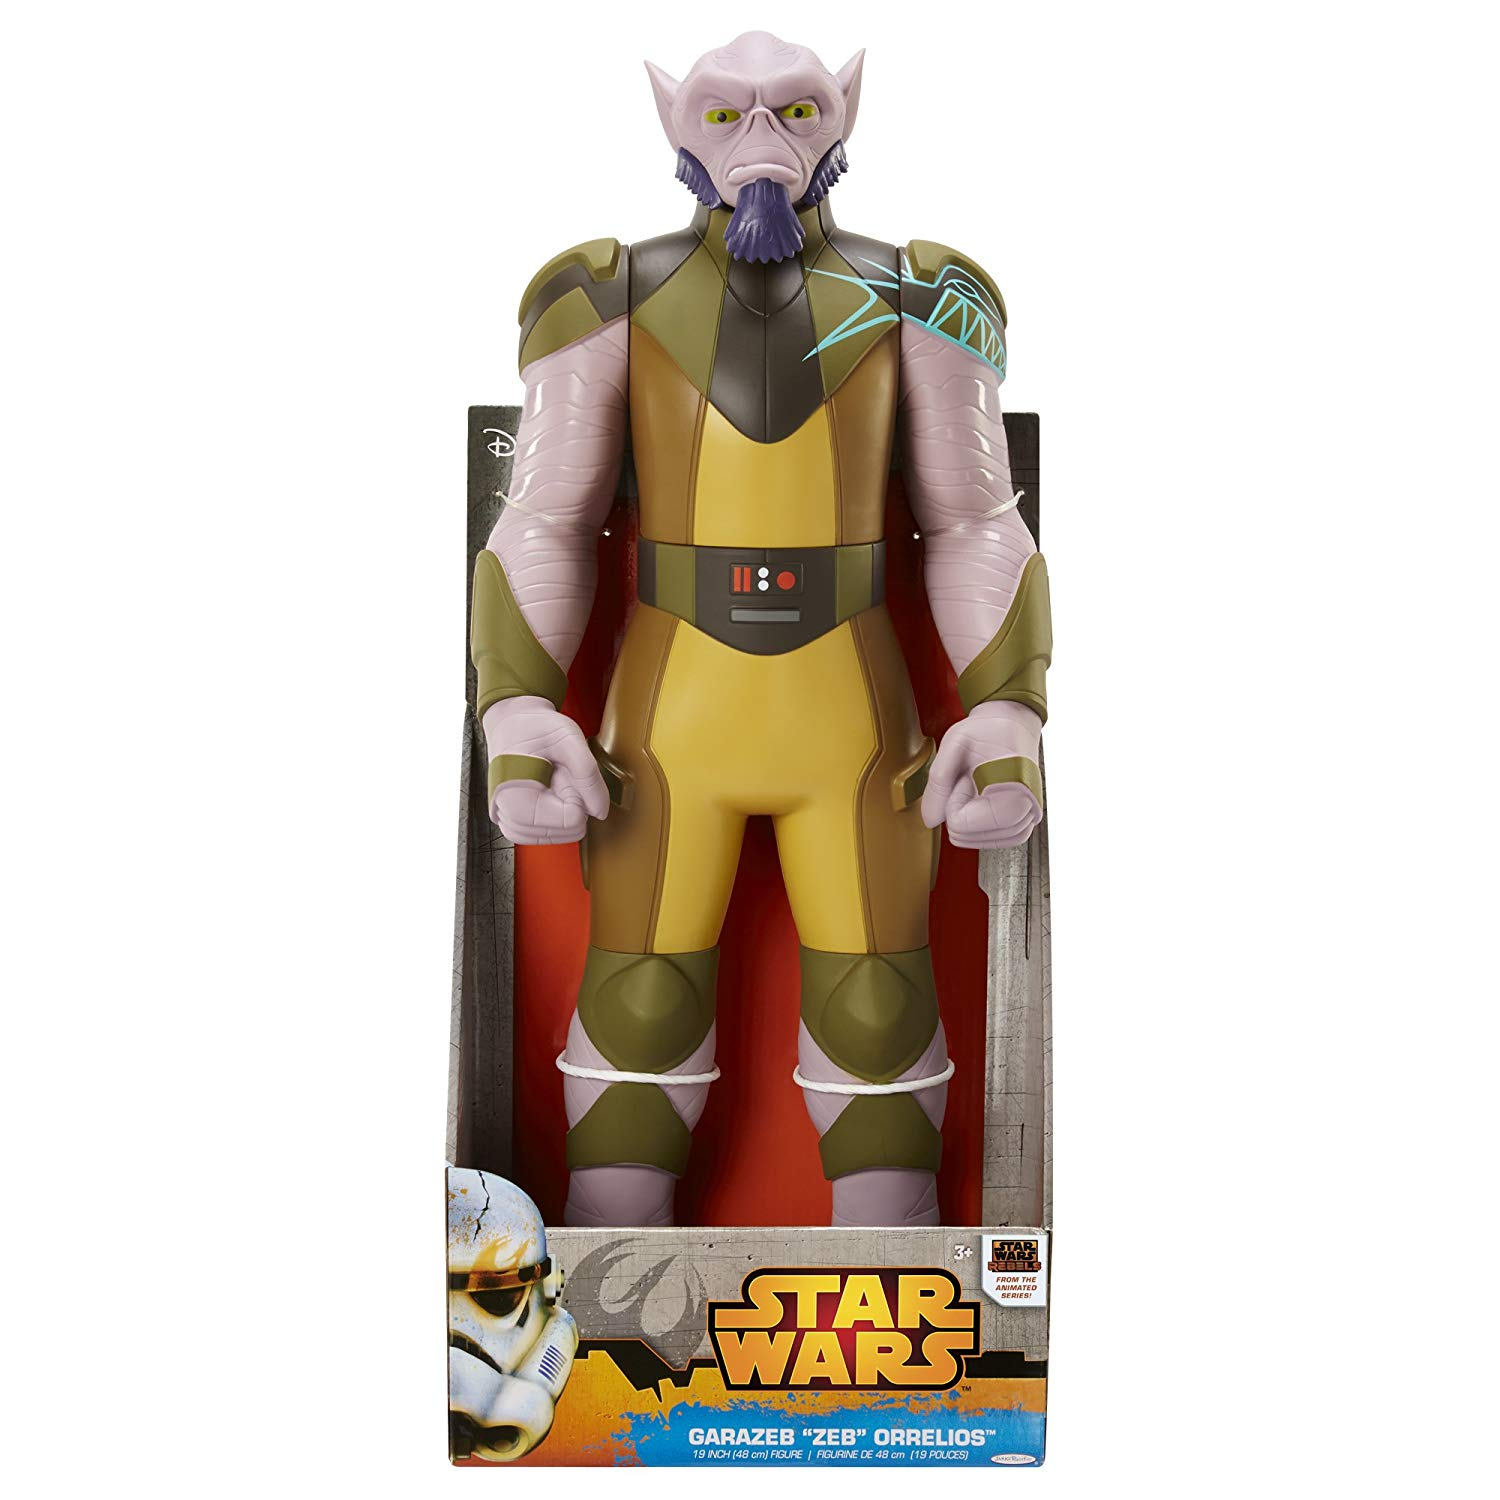 Steve Blum recommends Star Wars Rebels Zeb Figure